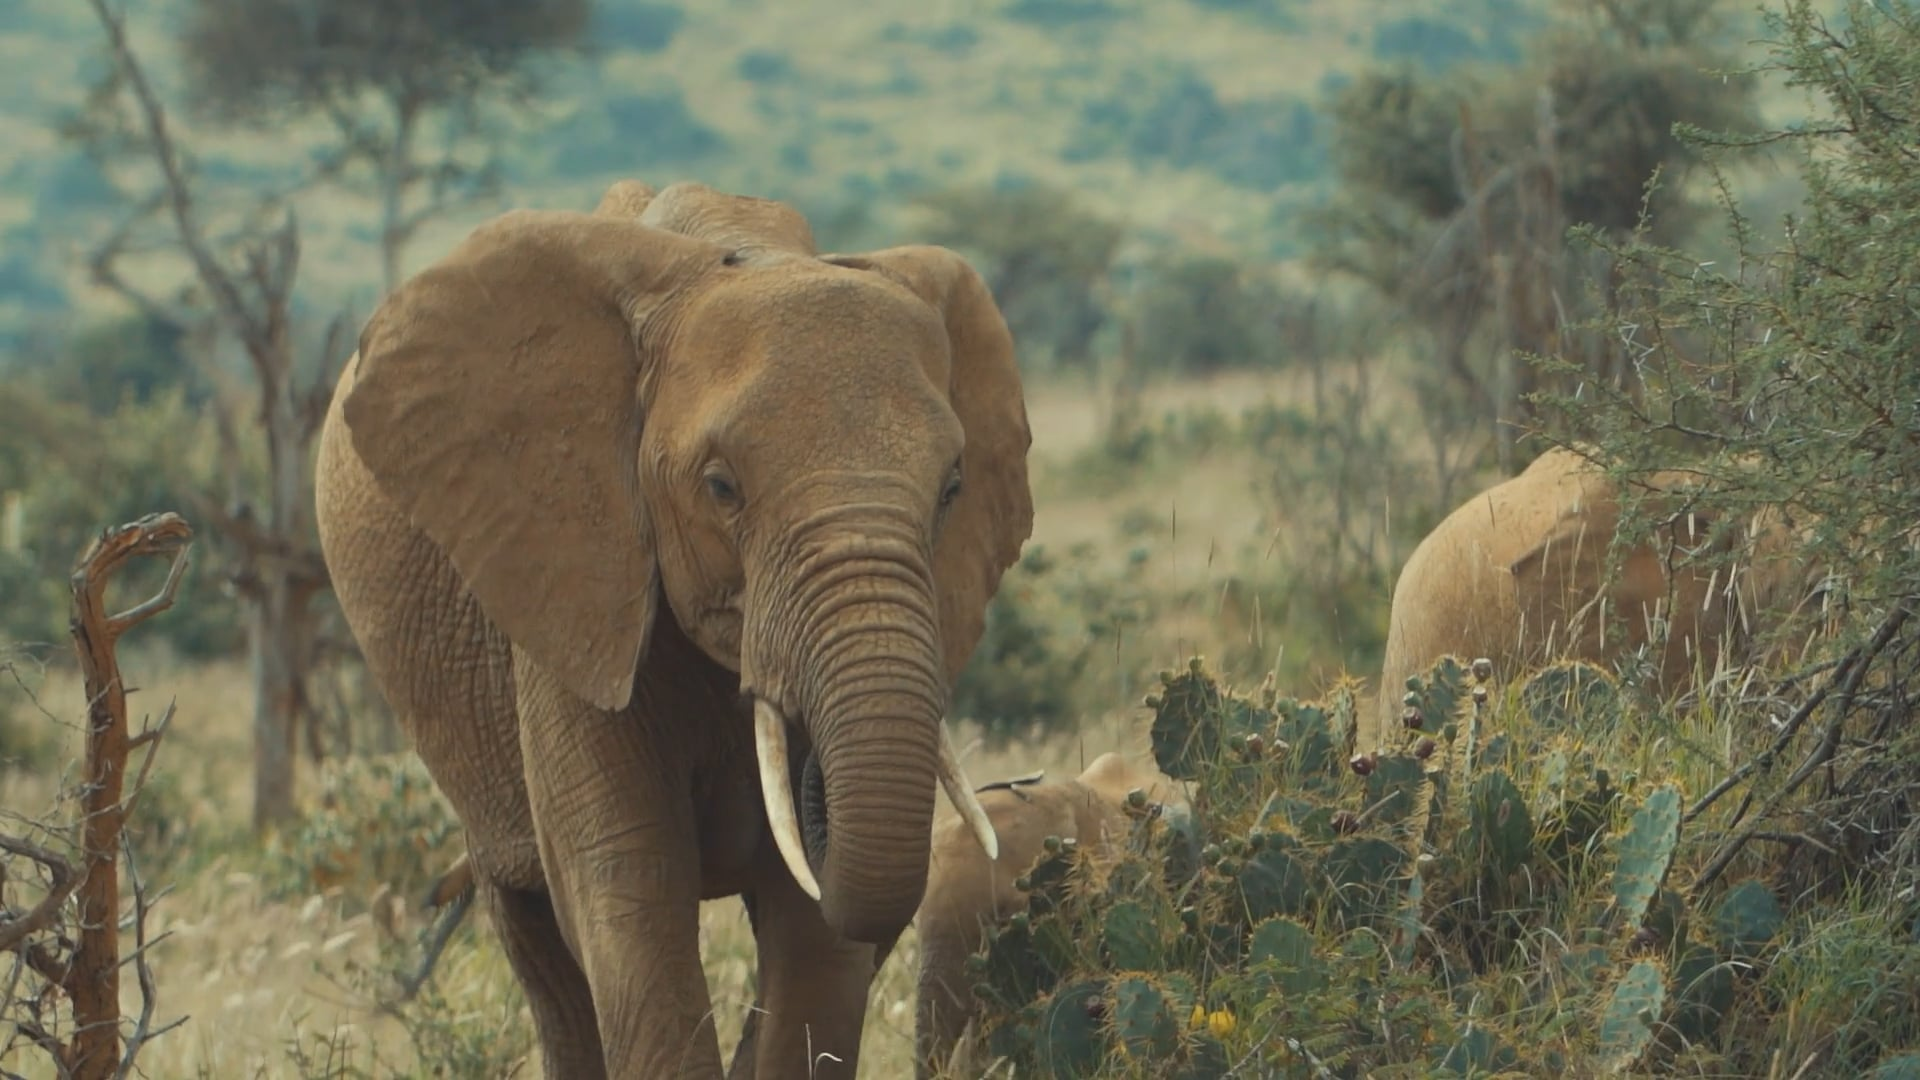 Space for Giants: Elephant Conservation Doc